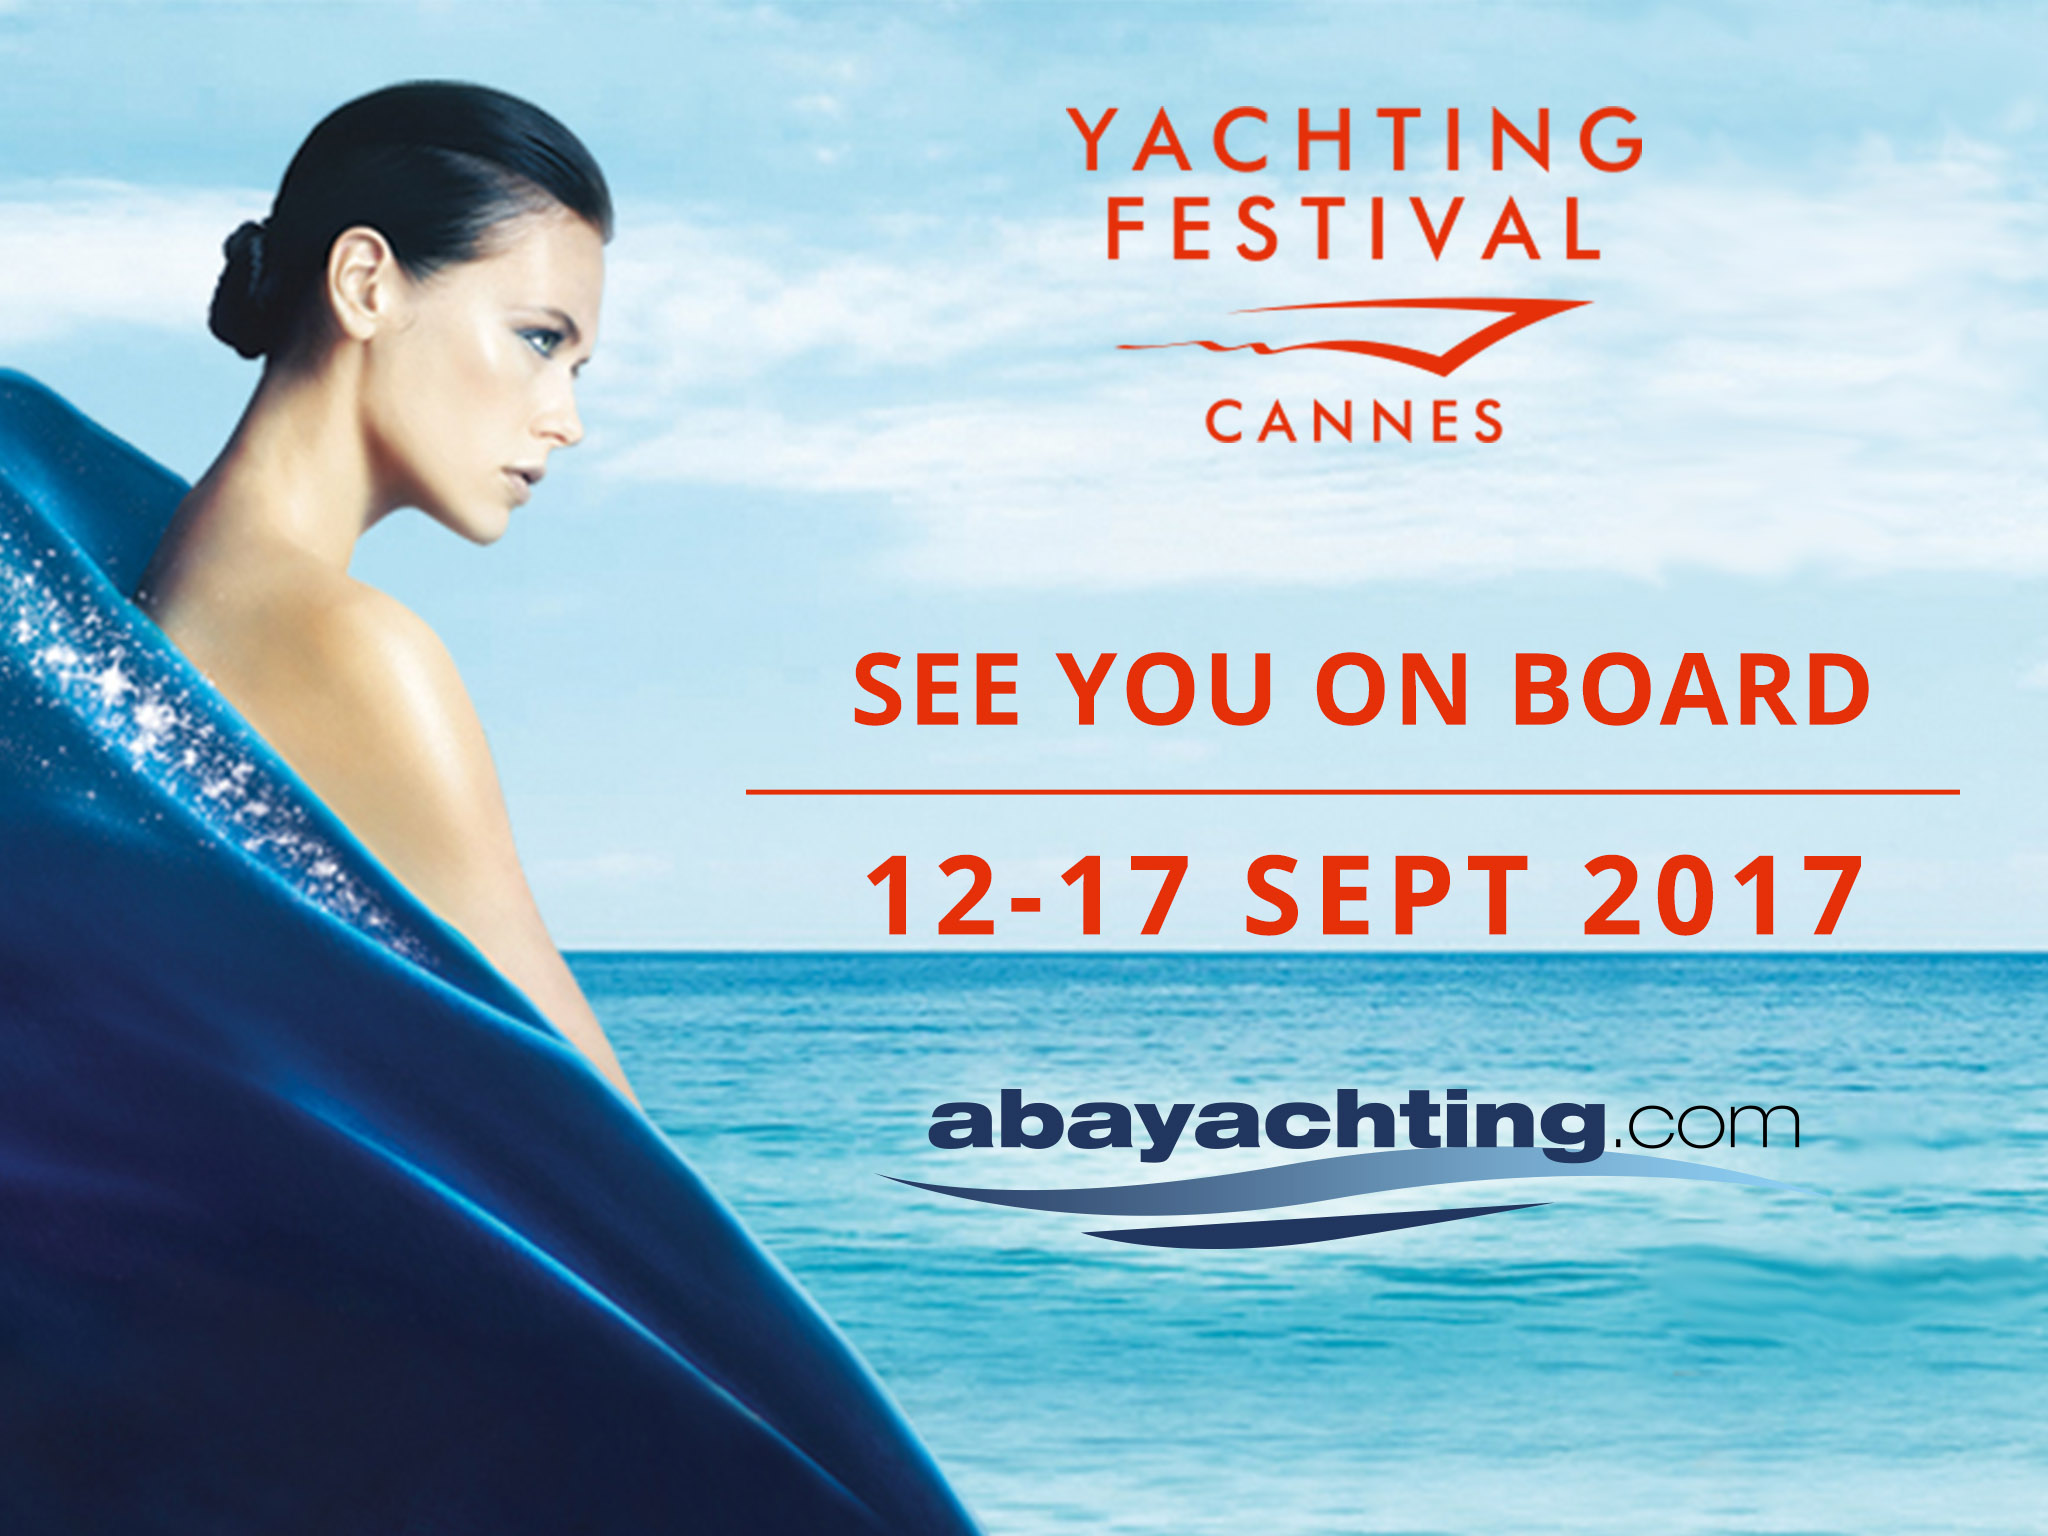 Abayachting at Cannes Yachting Festival 2017